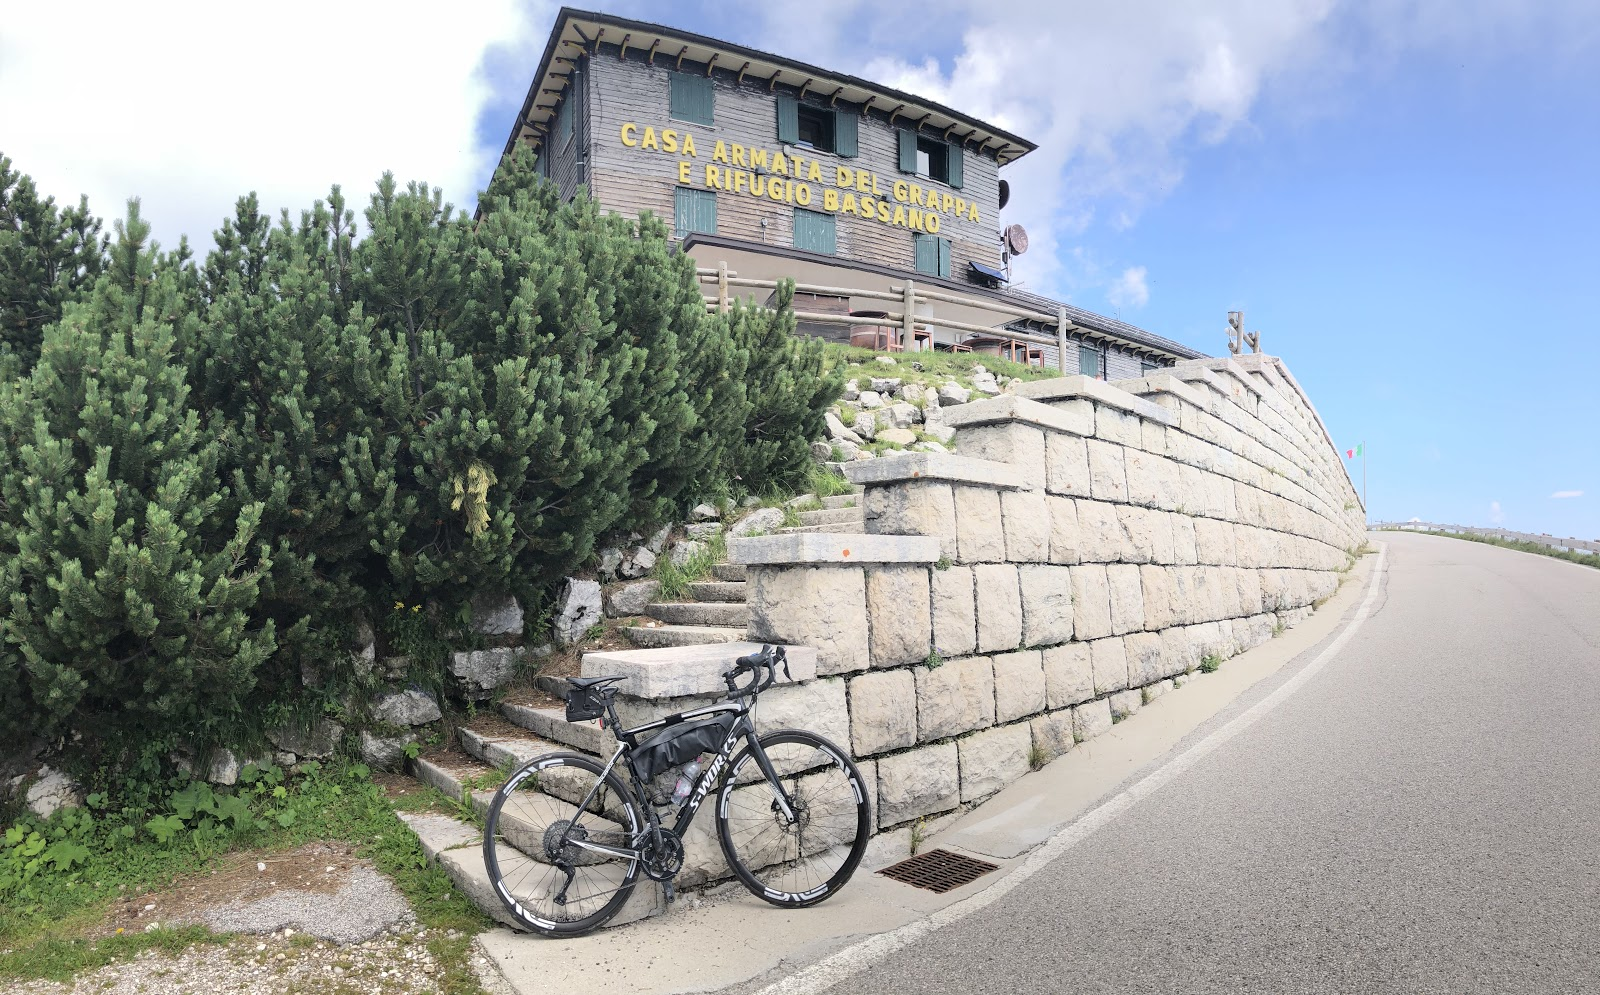 Cycling Monte Grappa from Romano d'Ezzilino - Rifugio Bassano a Cima Grappa - cyclists, bicycles, sign